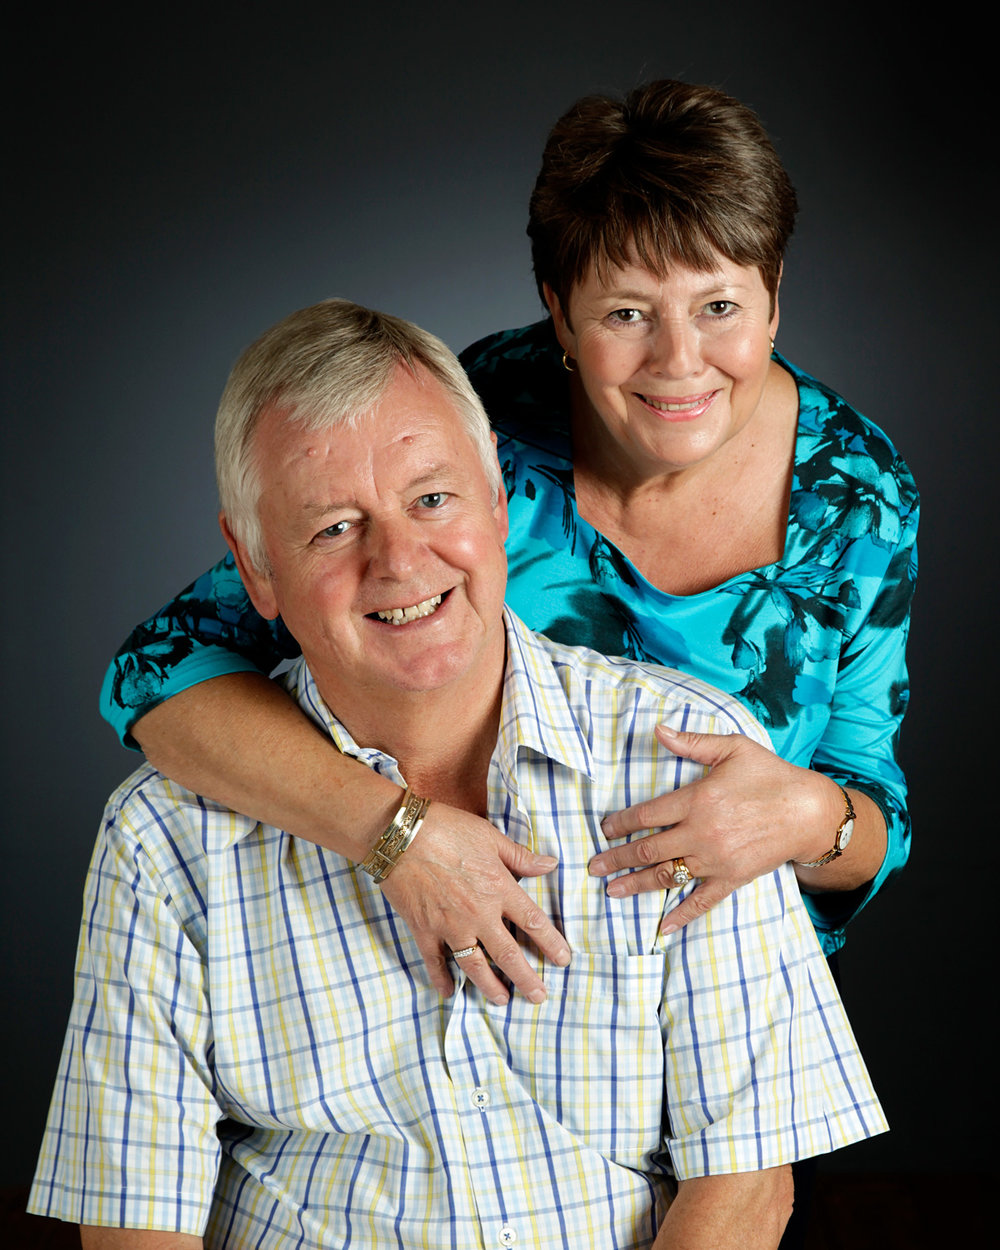 Couple_Adult_Portrait_Photographer_Newbury_Berkshire_052.jpg